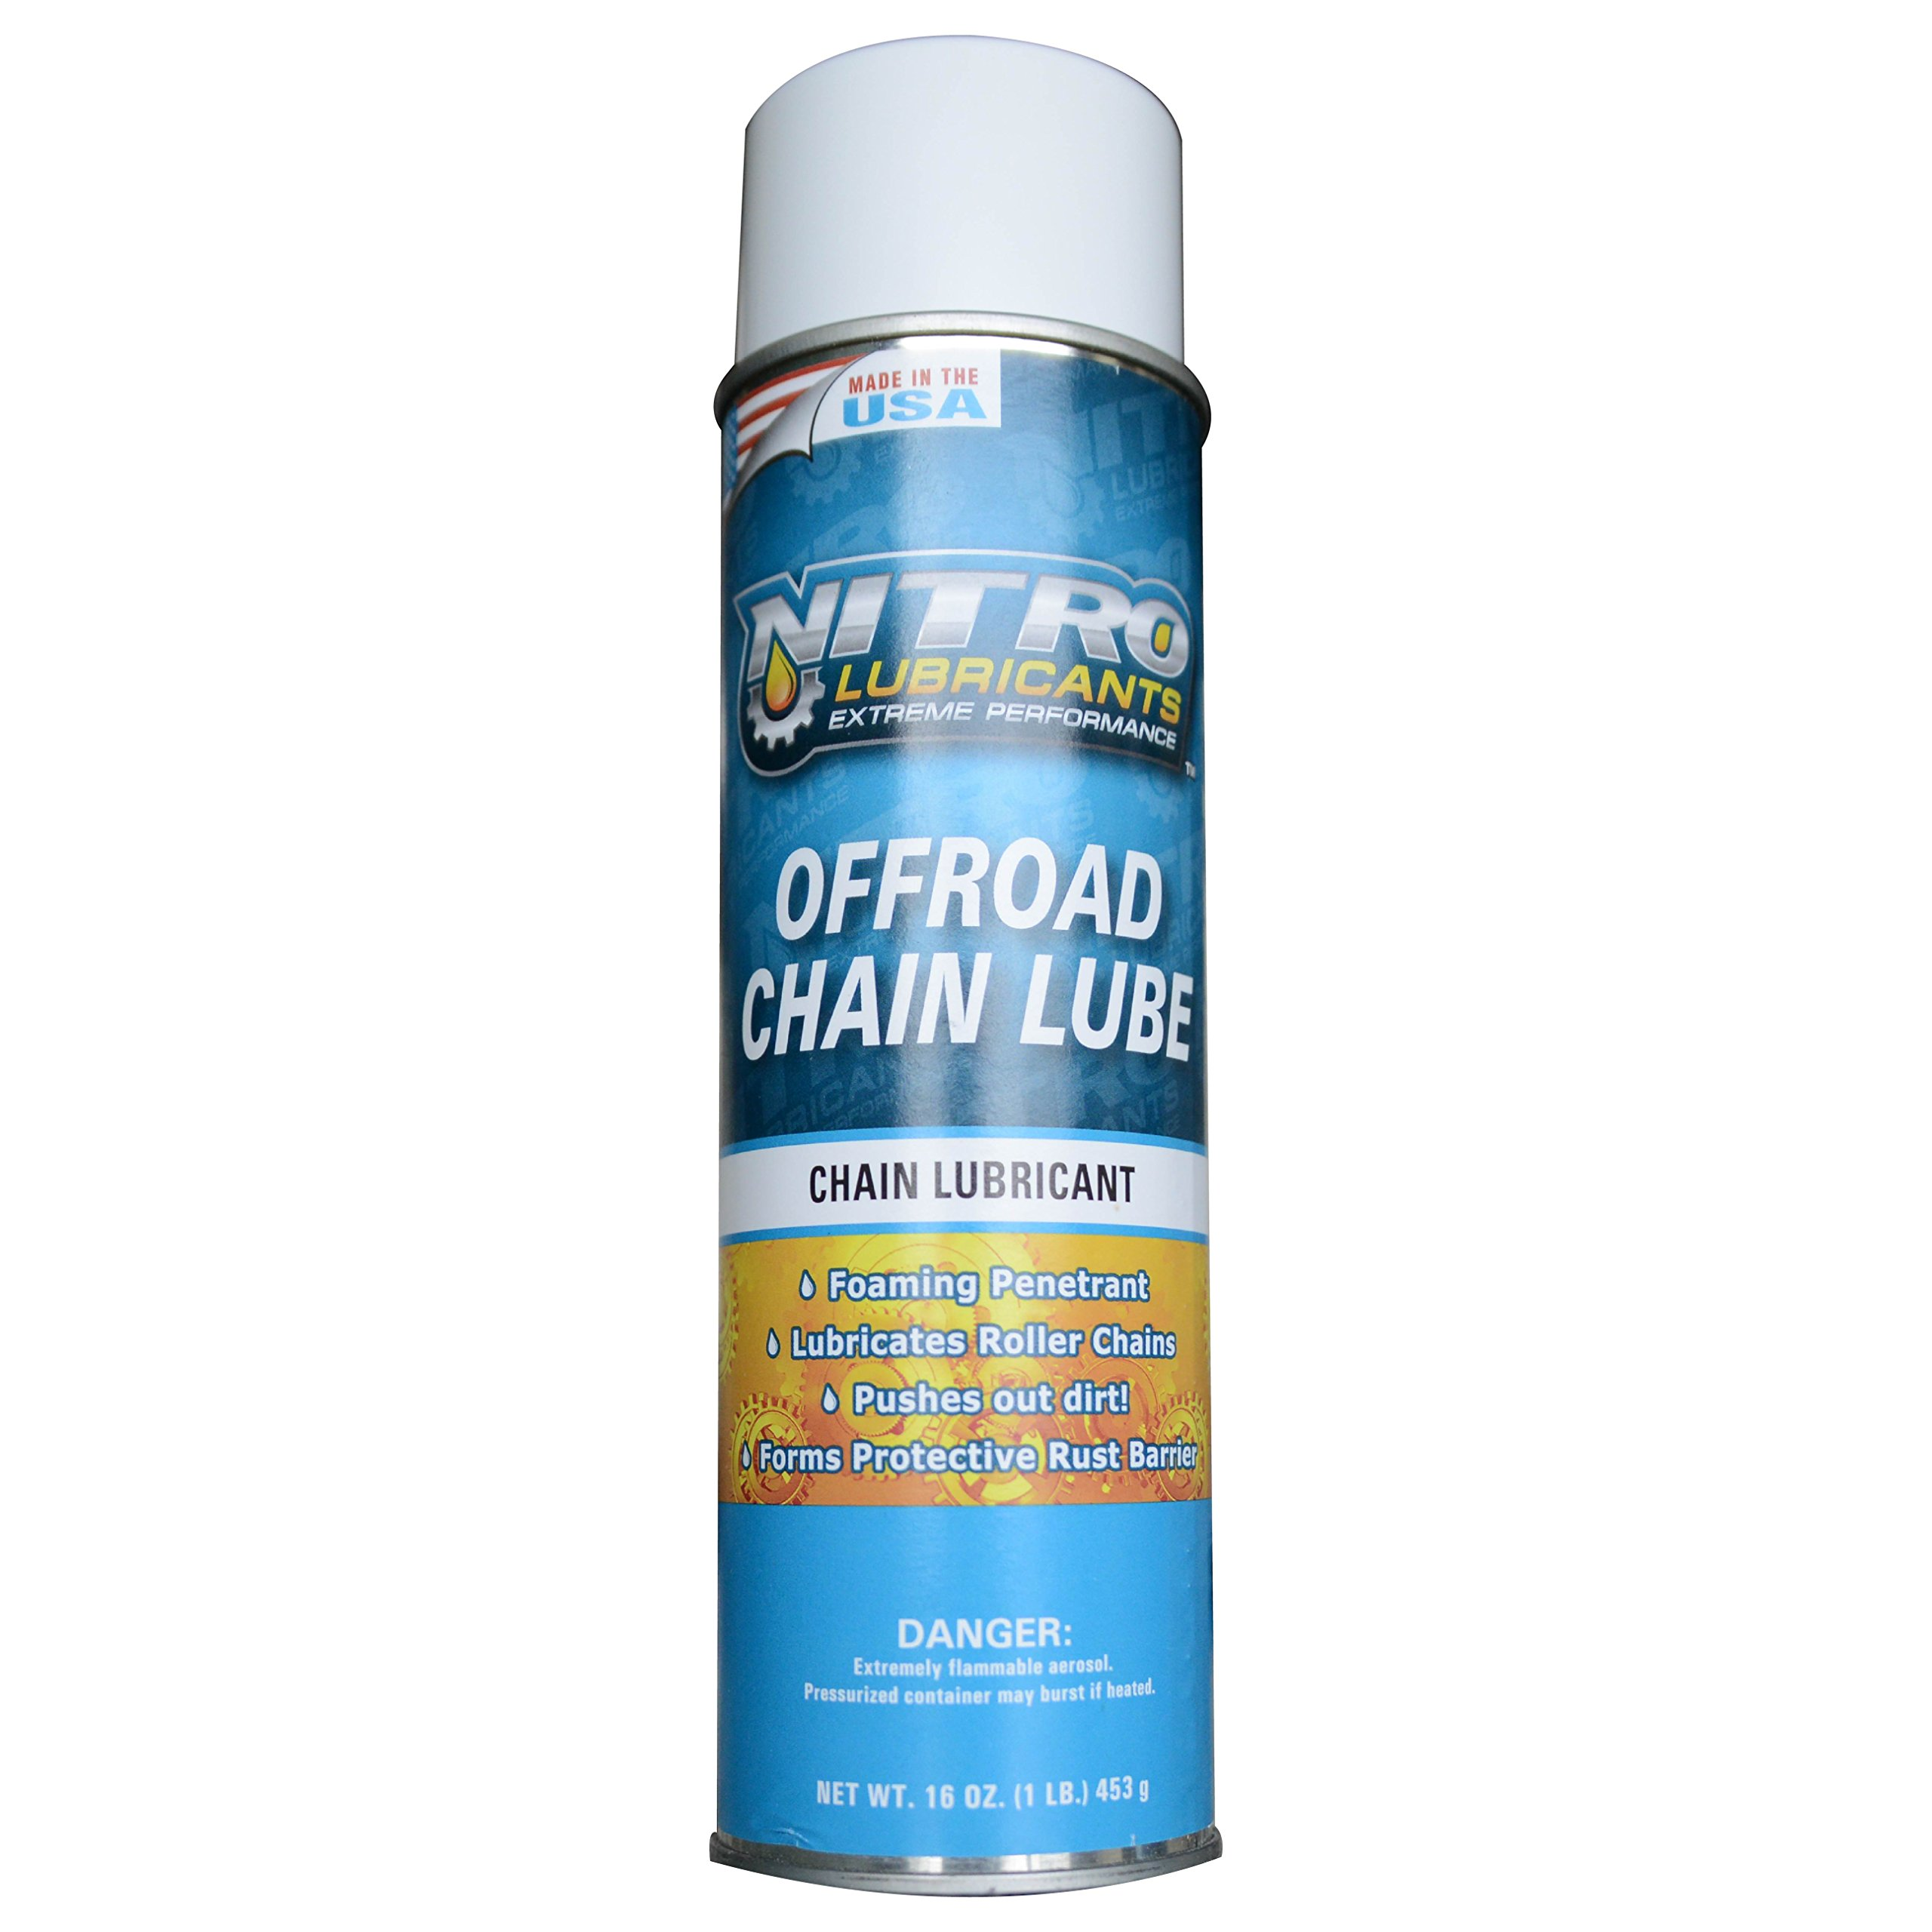 Nitro Lubricants Off Road Chain Lube - 12 Cans (1 Case)